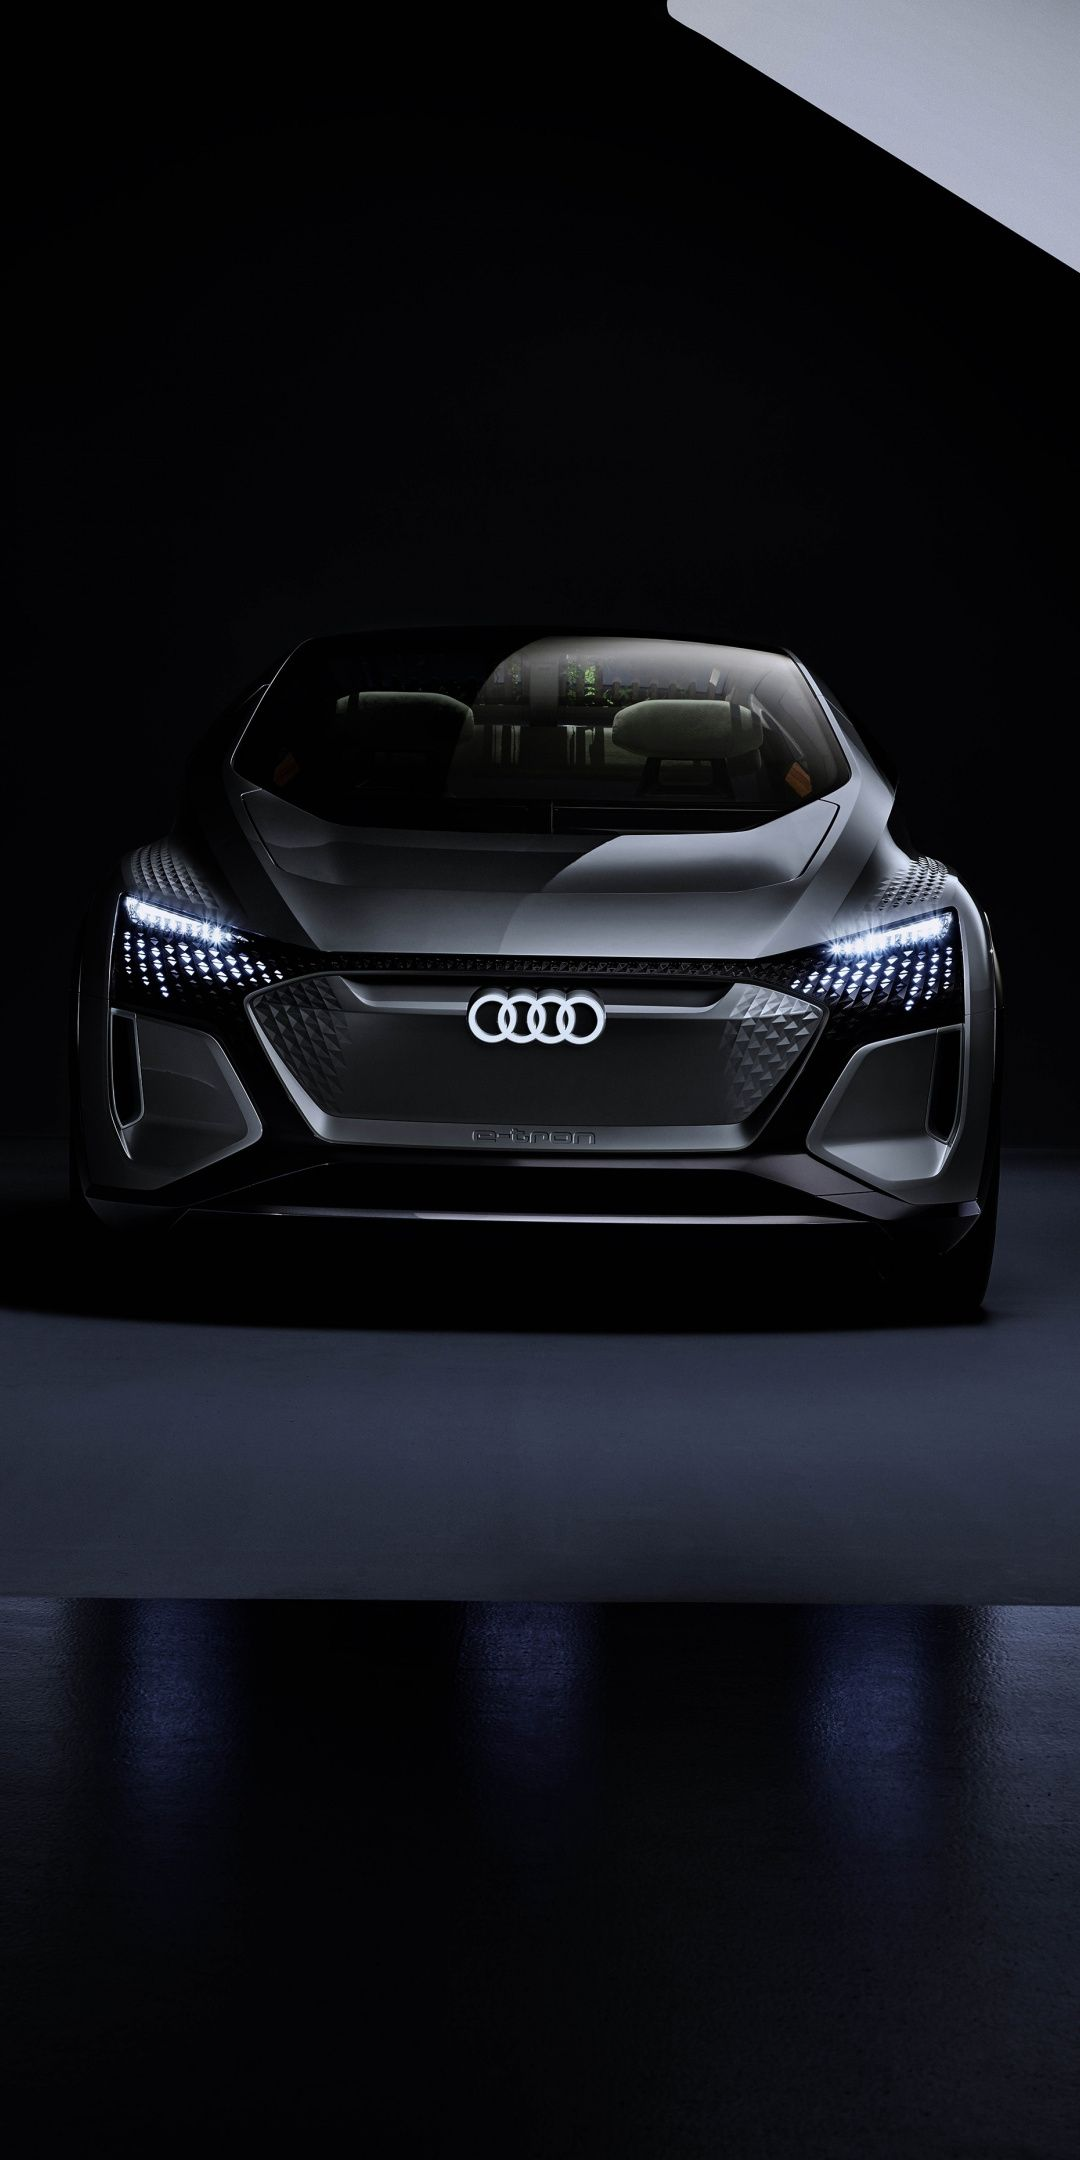 Audi Ai Me Concept Car Black 2019 Wallpaper Concept Cars Car Accessories For Guys Black Car Wallpaper